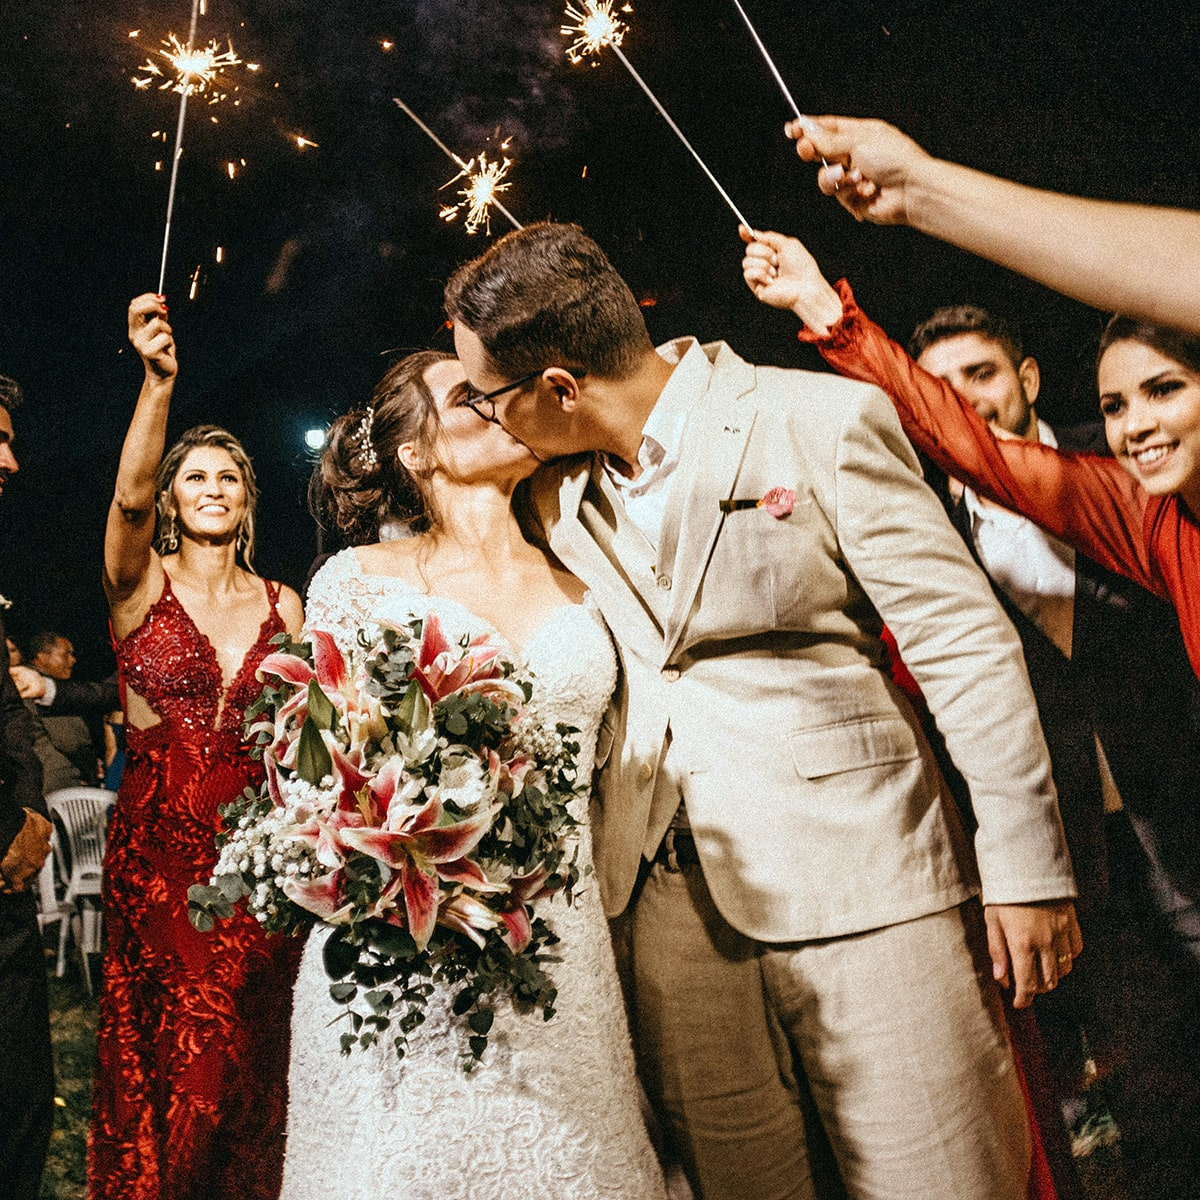 Image of Gold Sparklers Used in a Send-Off at a Wedding